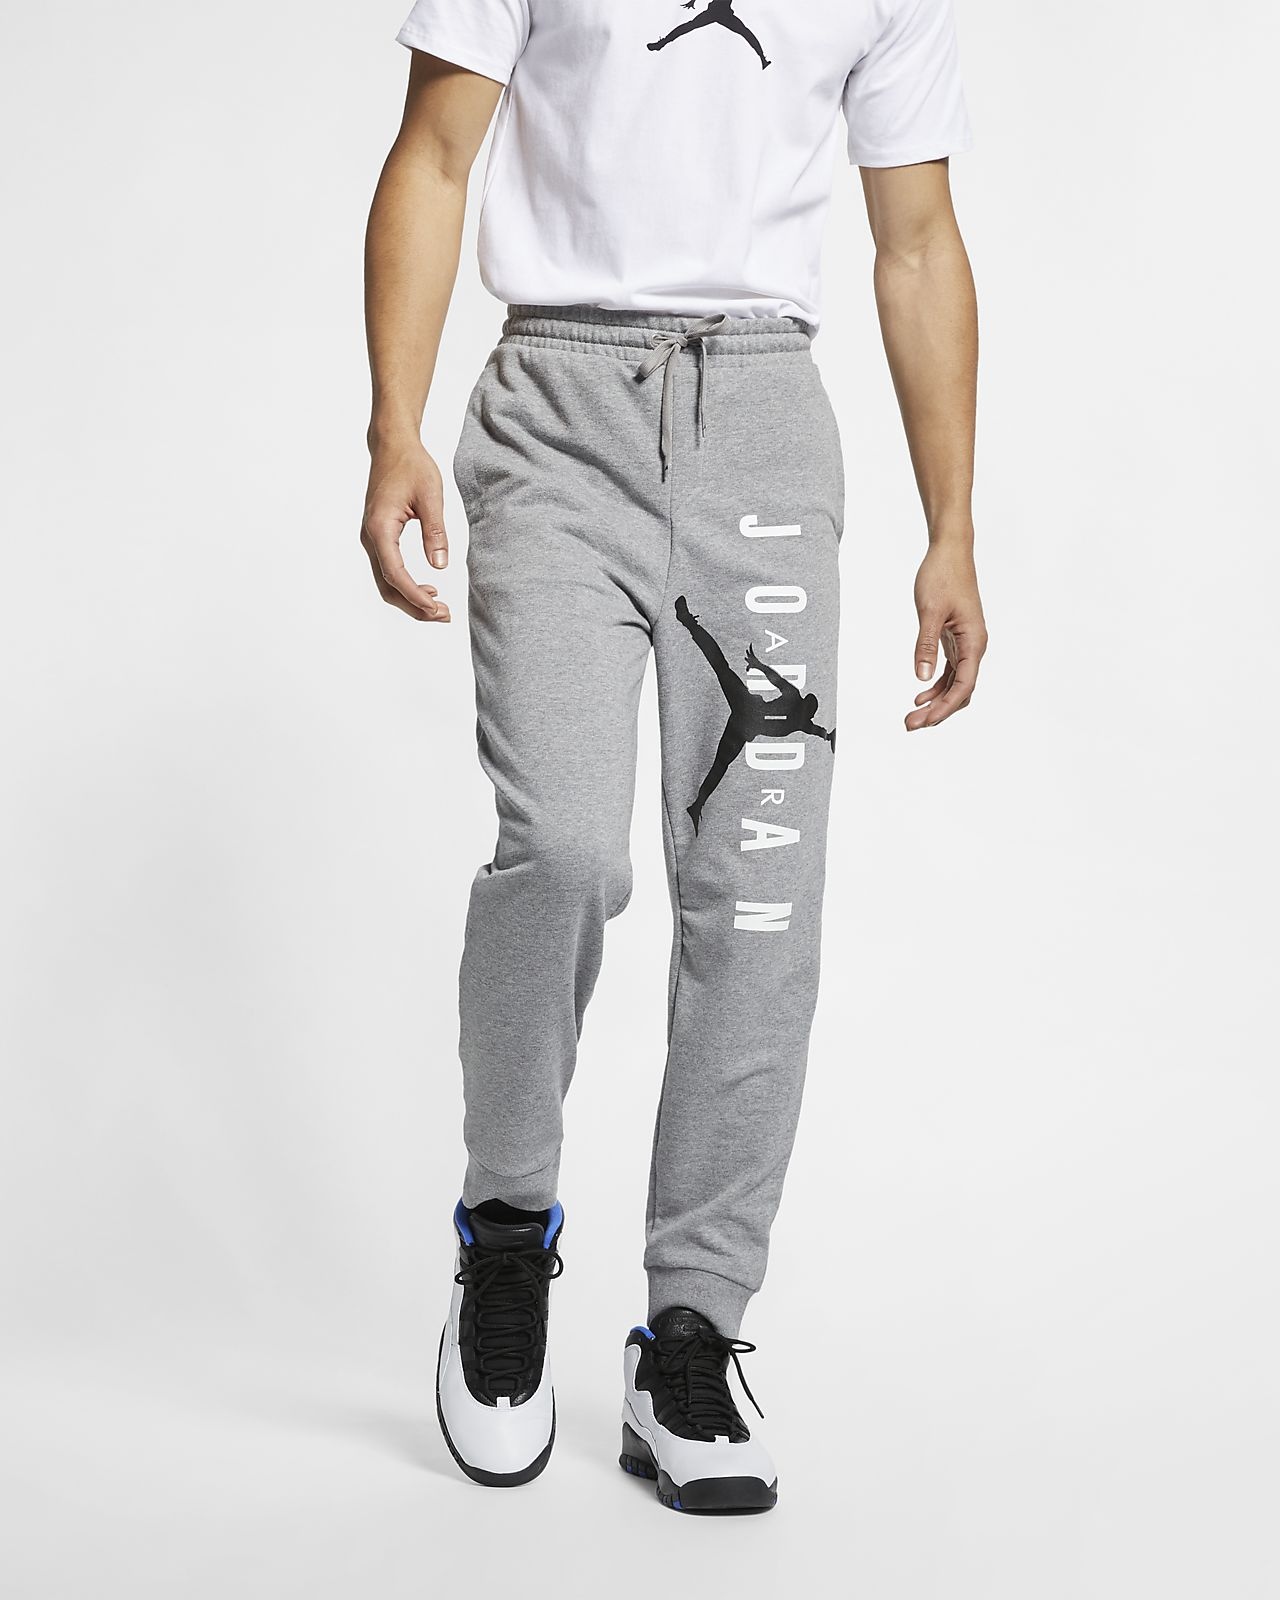 35a253f157a427 Jordan Jumpman Air Men s Lightweight Fleece Trousers. Nike.com LU